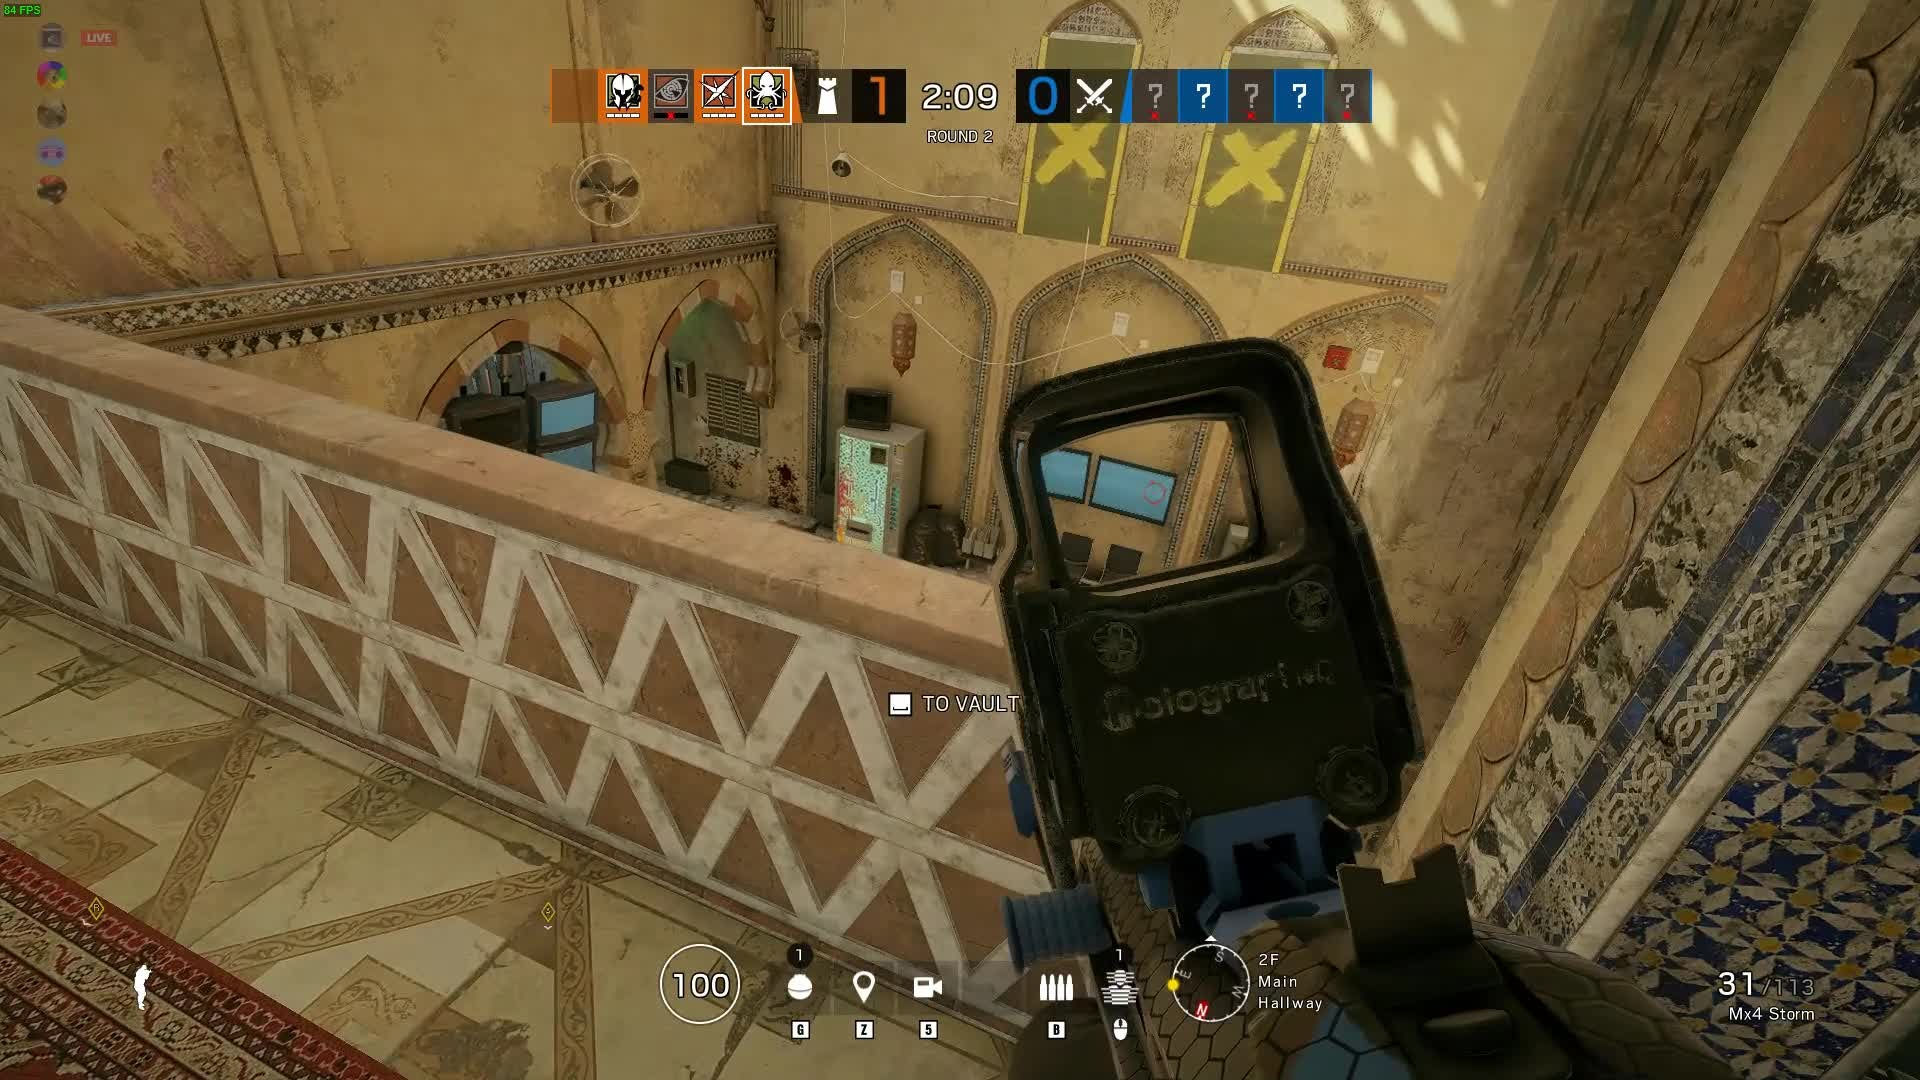 Rainbow Six: General - Alibi Ace in Border!! With a Lovely Finish ! video cover image 0